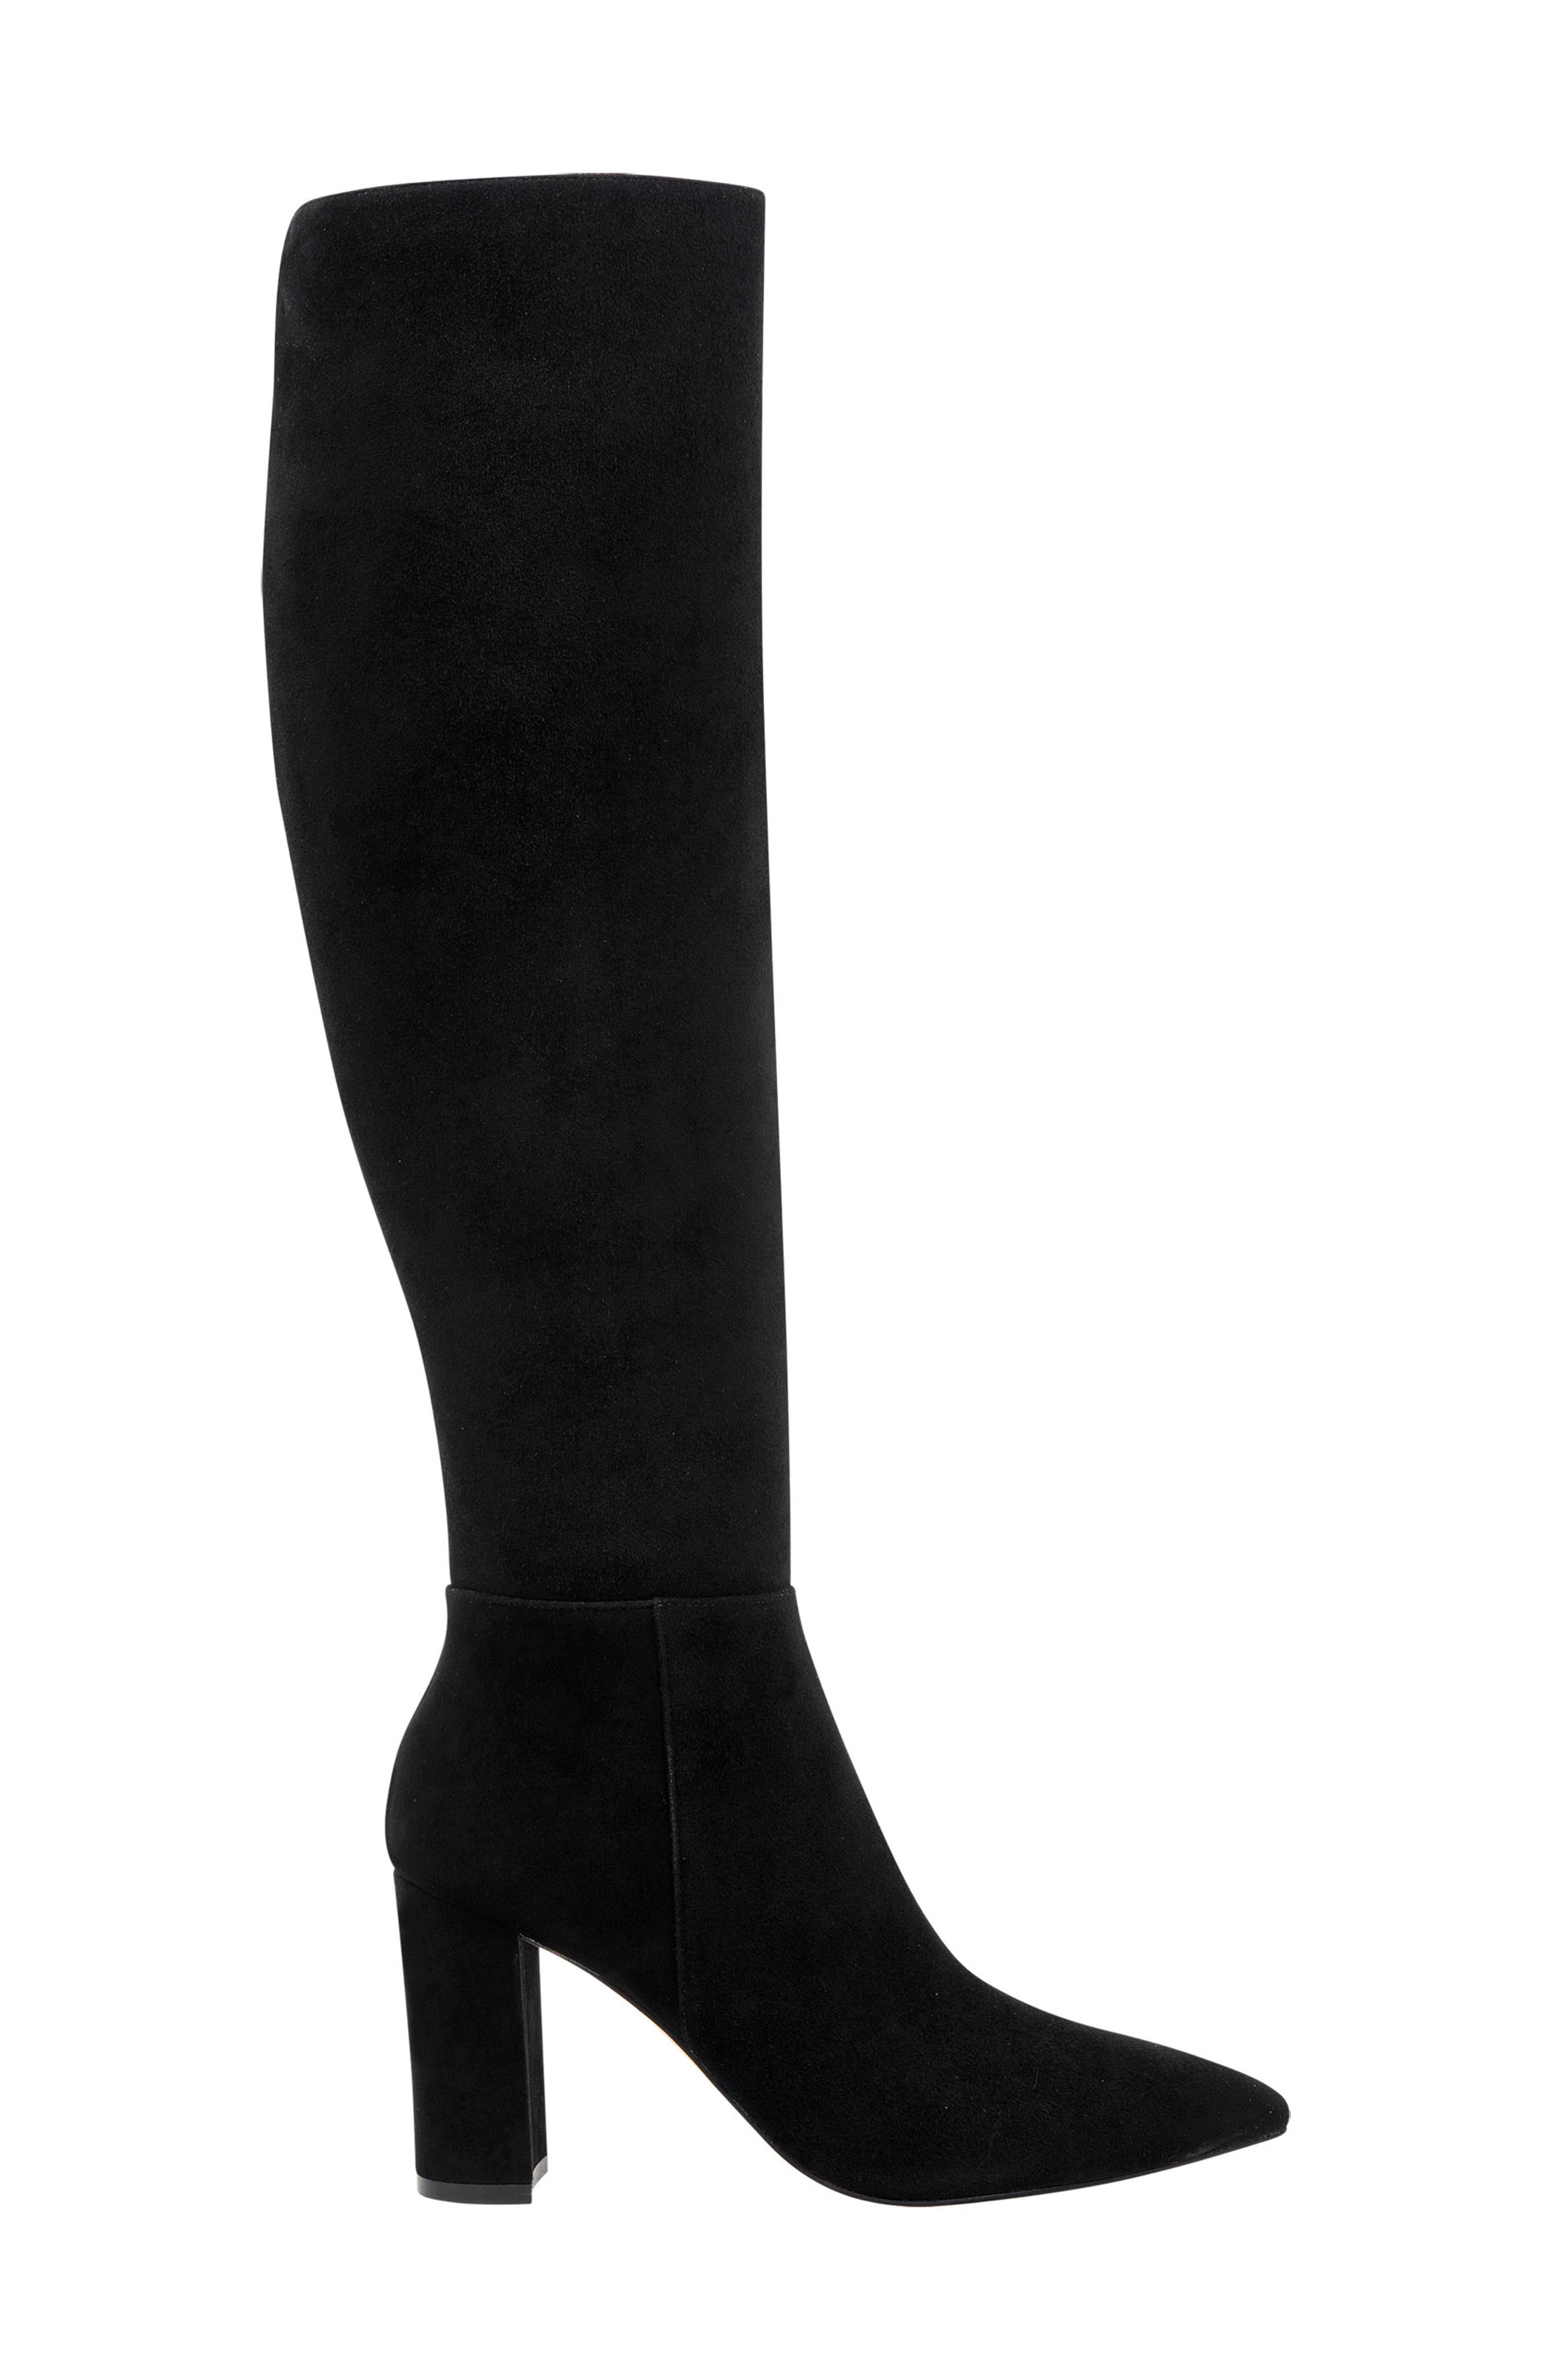 Ulana Knee High Boot,                             Alternate thumbnail 3, color,                             BLACK SUEDE